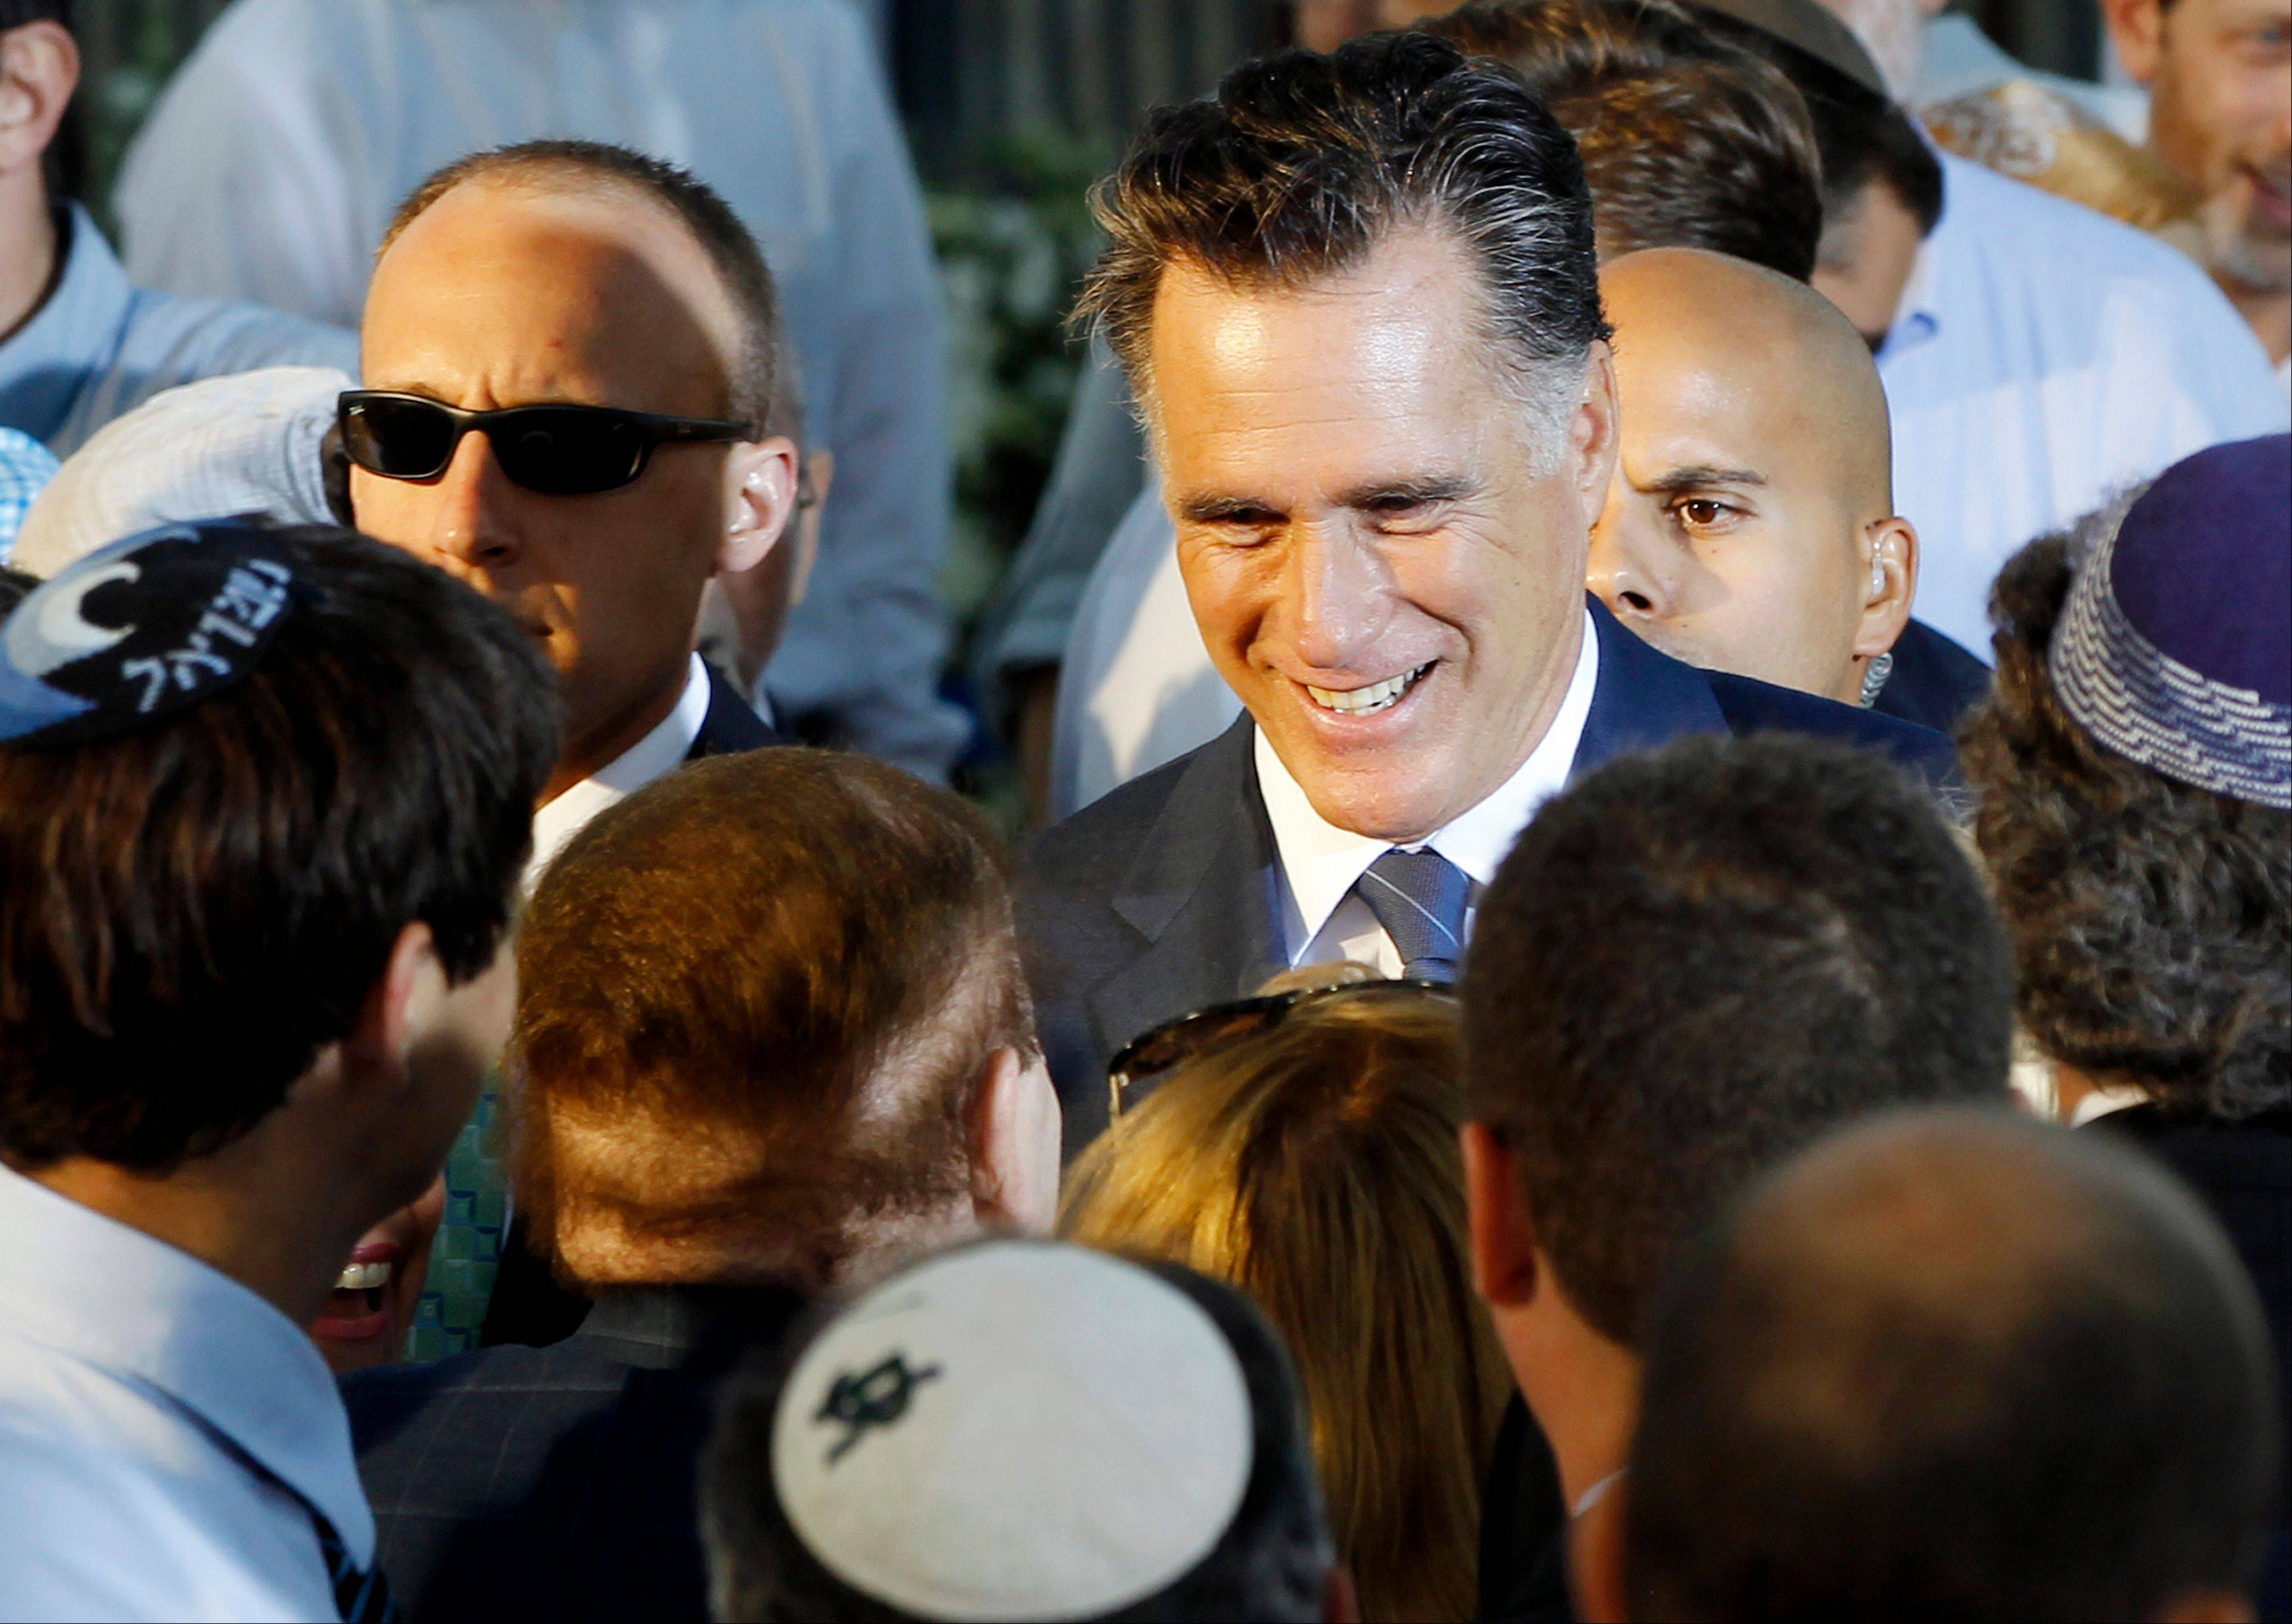 Republican presidential candidate and former Massachusetts Gov. Mitt Romney talks to American businessman Sheldon Adelson, who has said he will donate millions to Romney's campaign, after he delivered a speech in Jerusalem, Sunday.